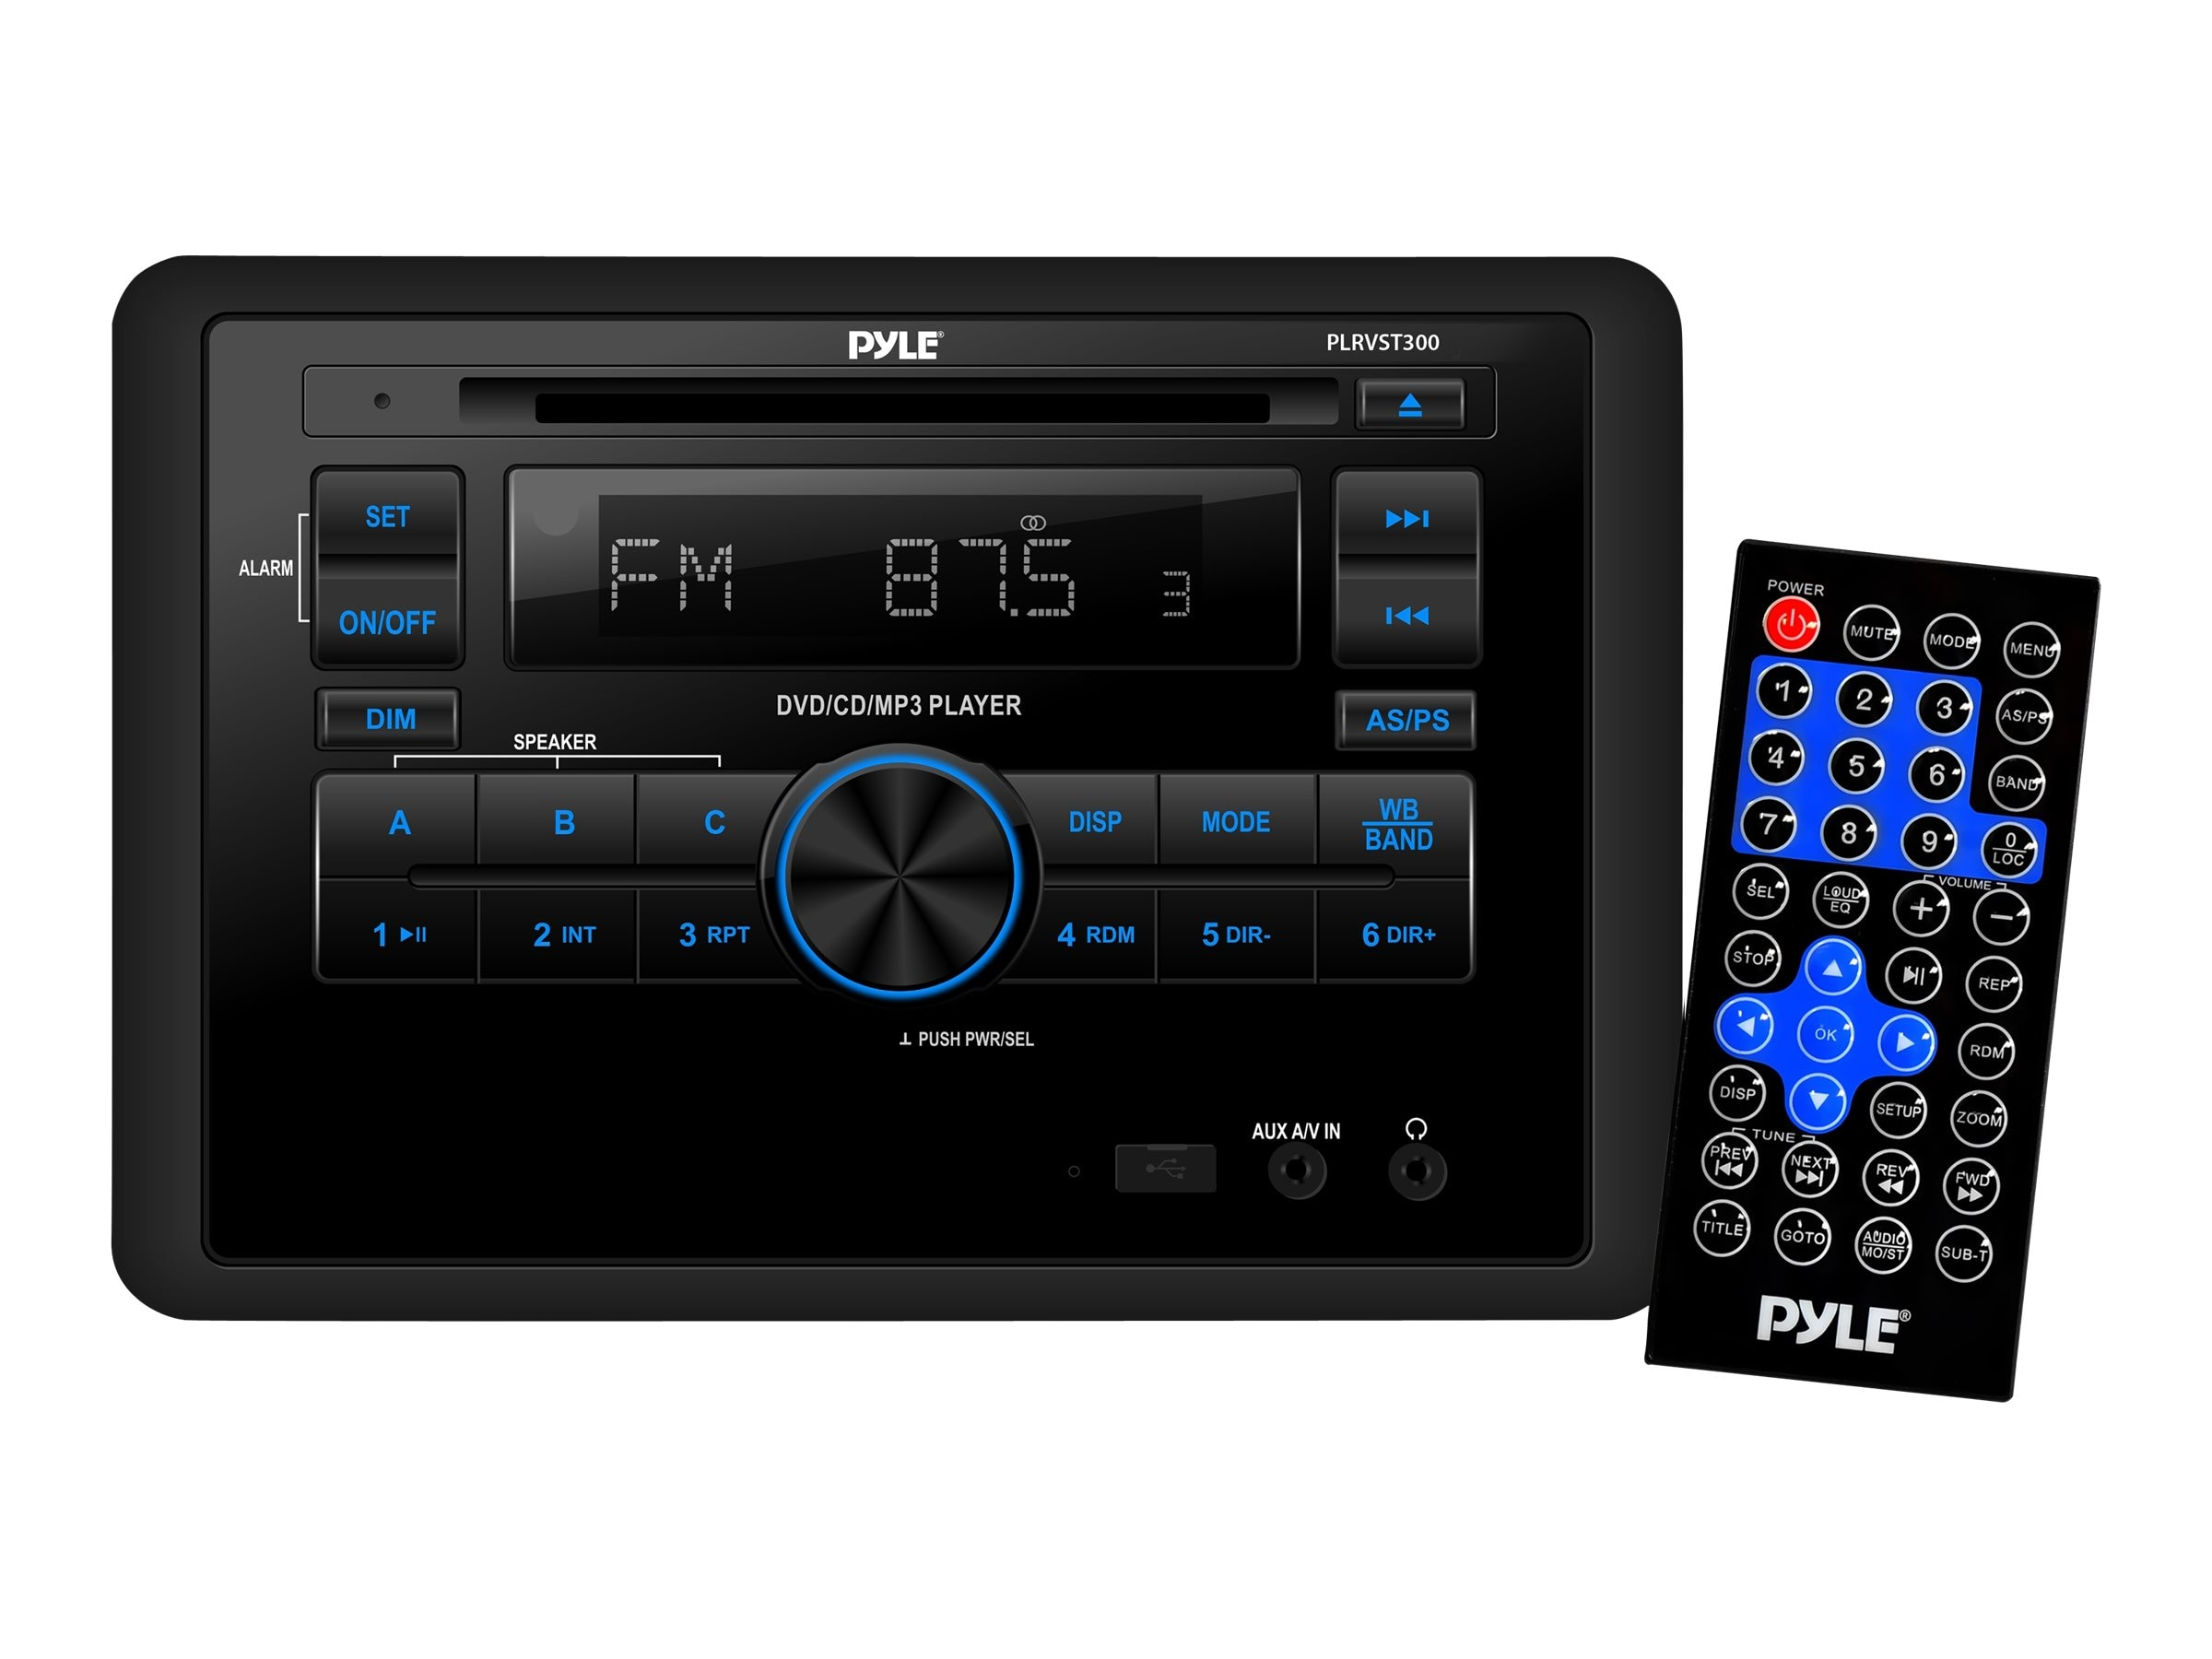 Pyle MARINE BT AUDIO VIDEO RCVR     PERPWATER RESISTANT A V STEREO HEADUNIT